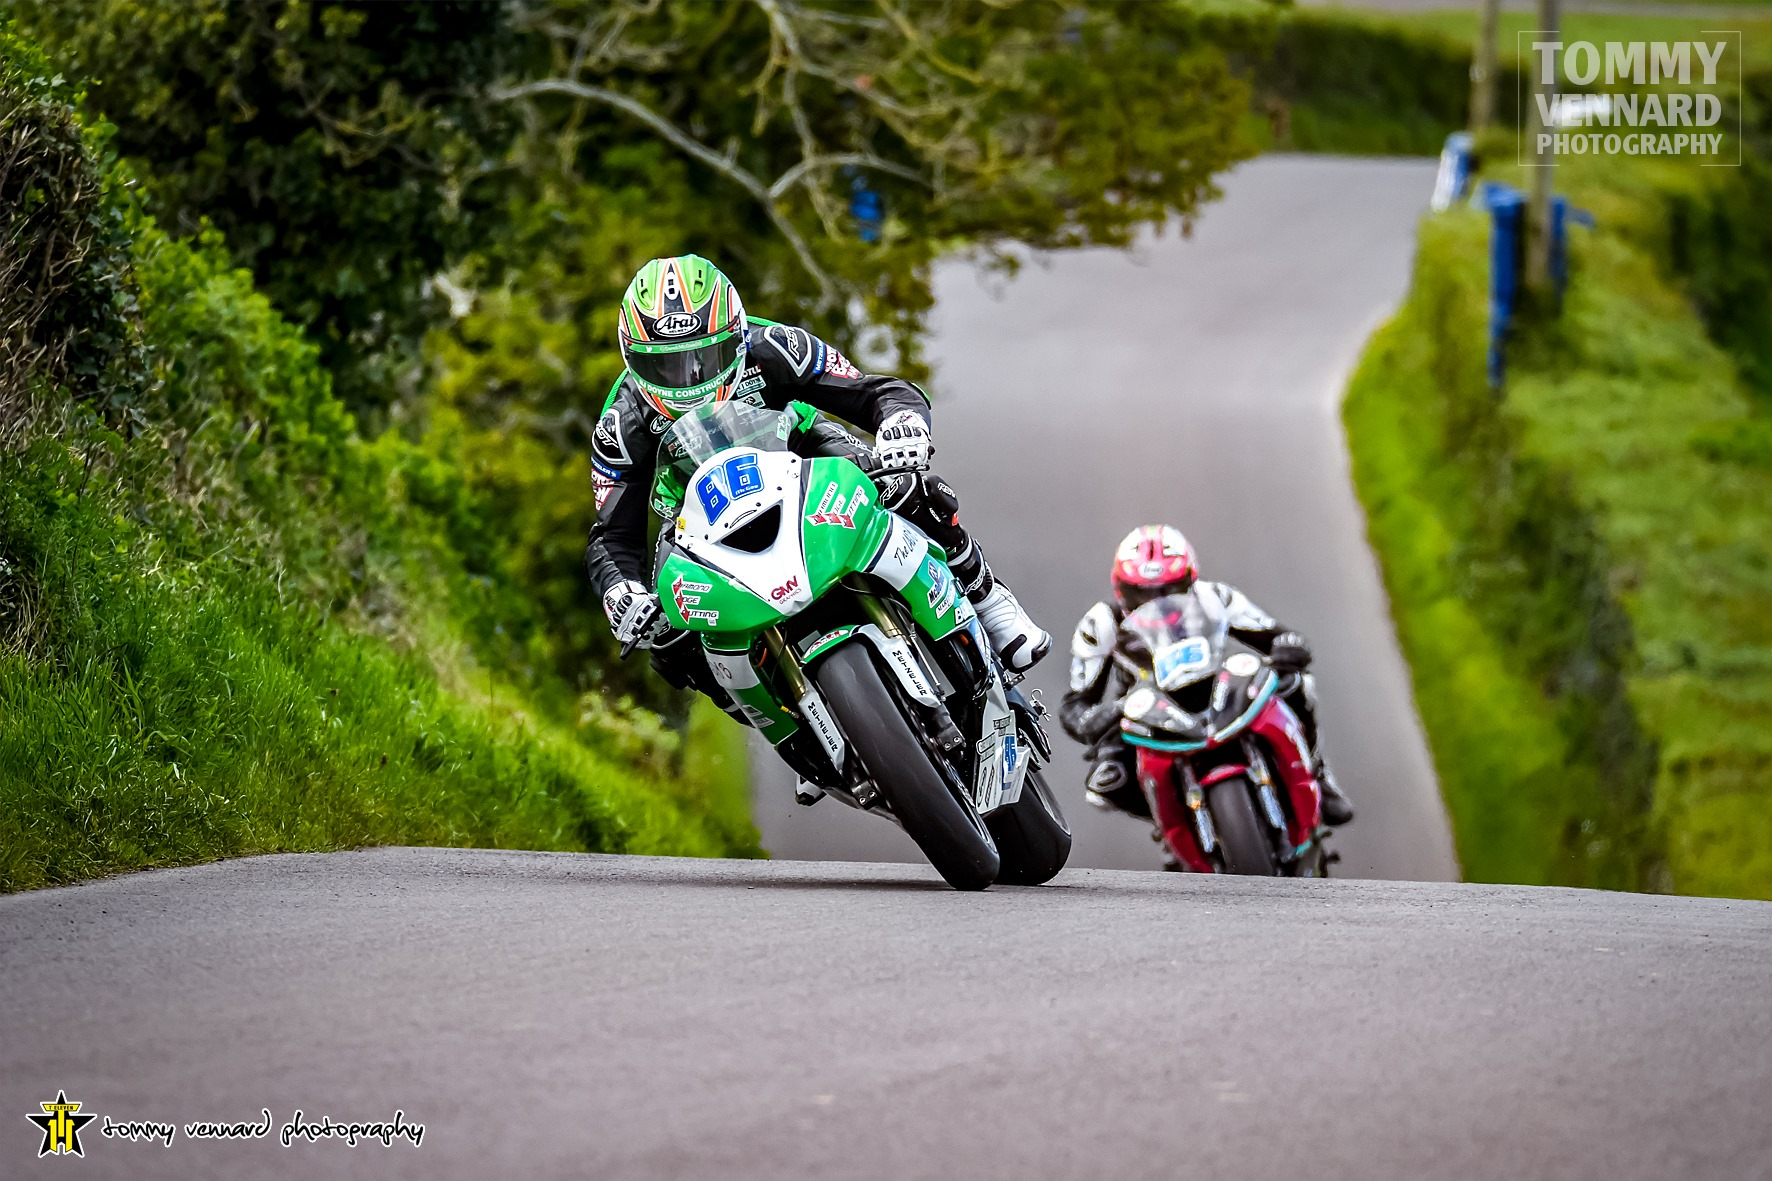 Coronavirus Forces Cancellation Of 60th Tandragee 100